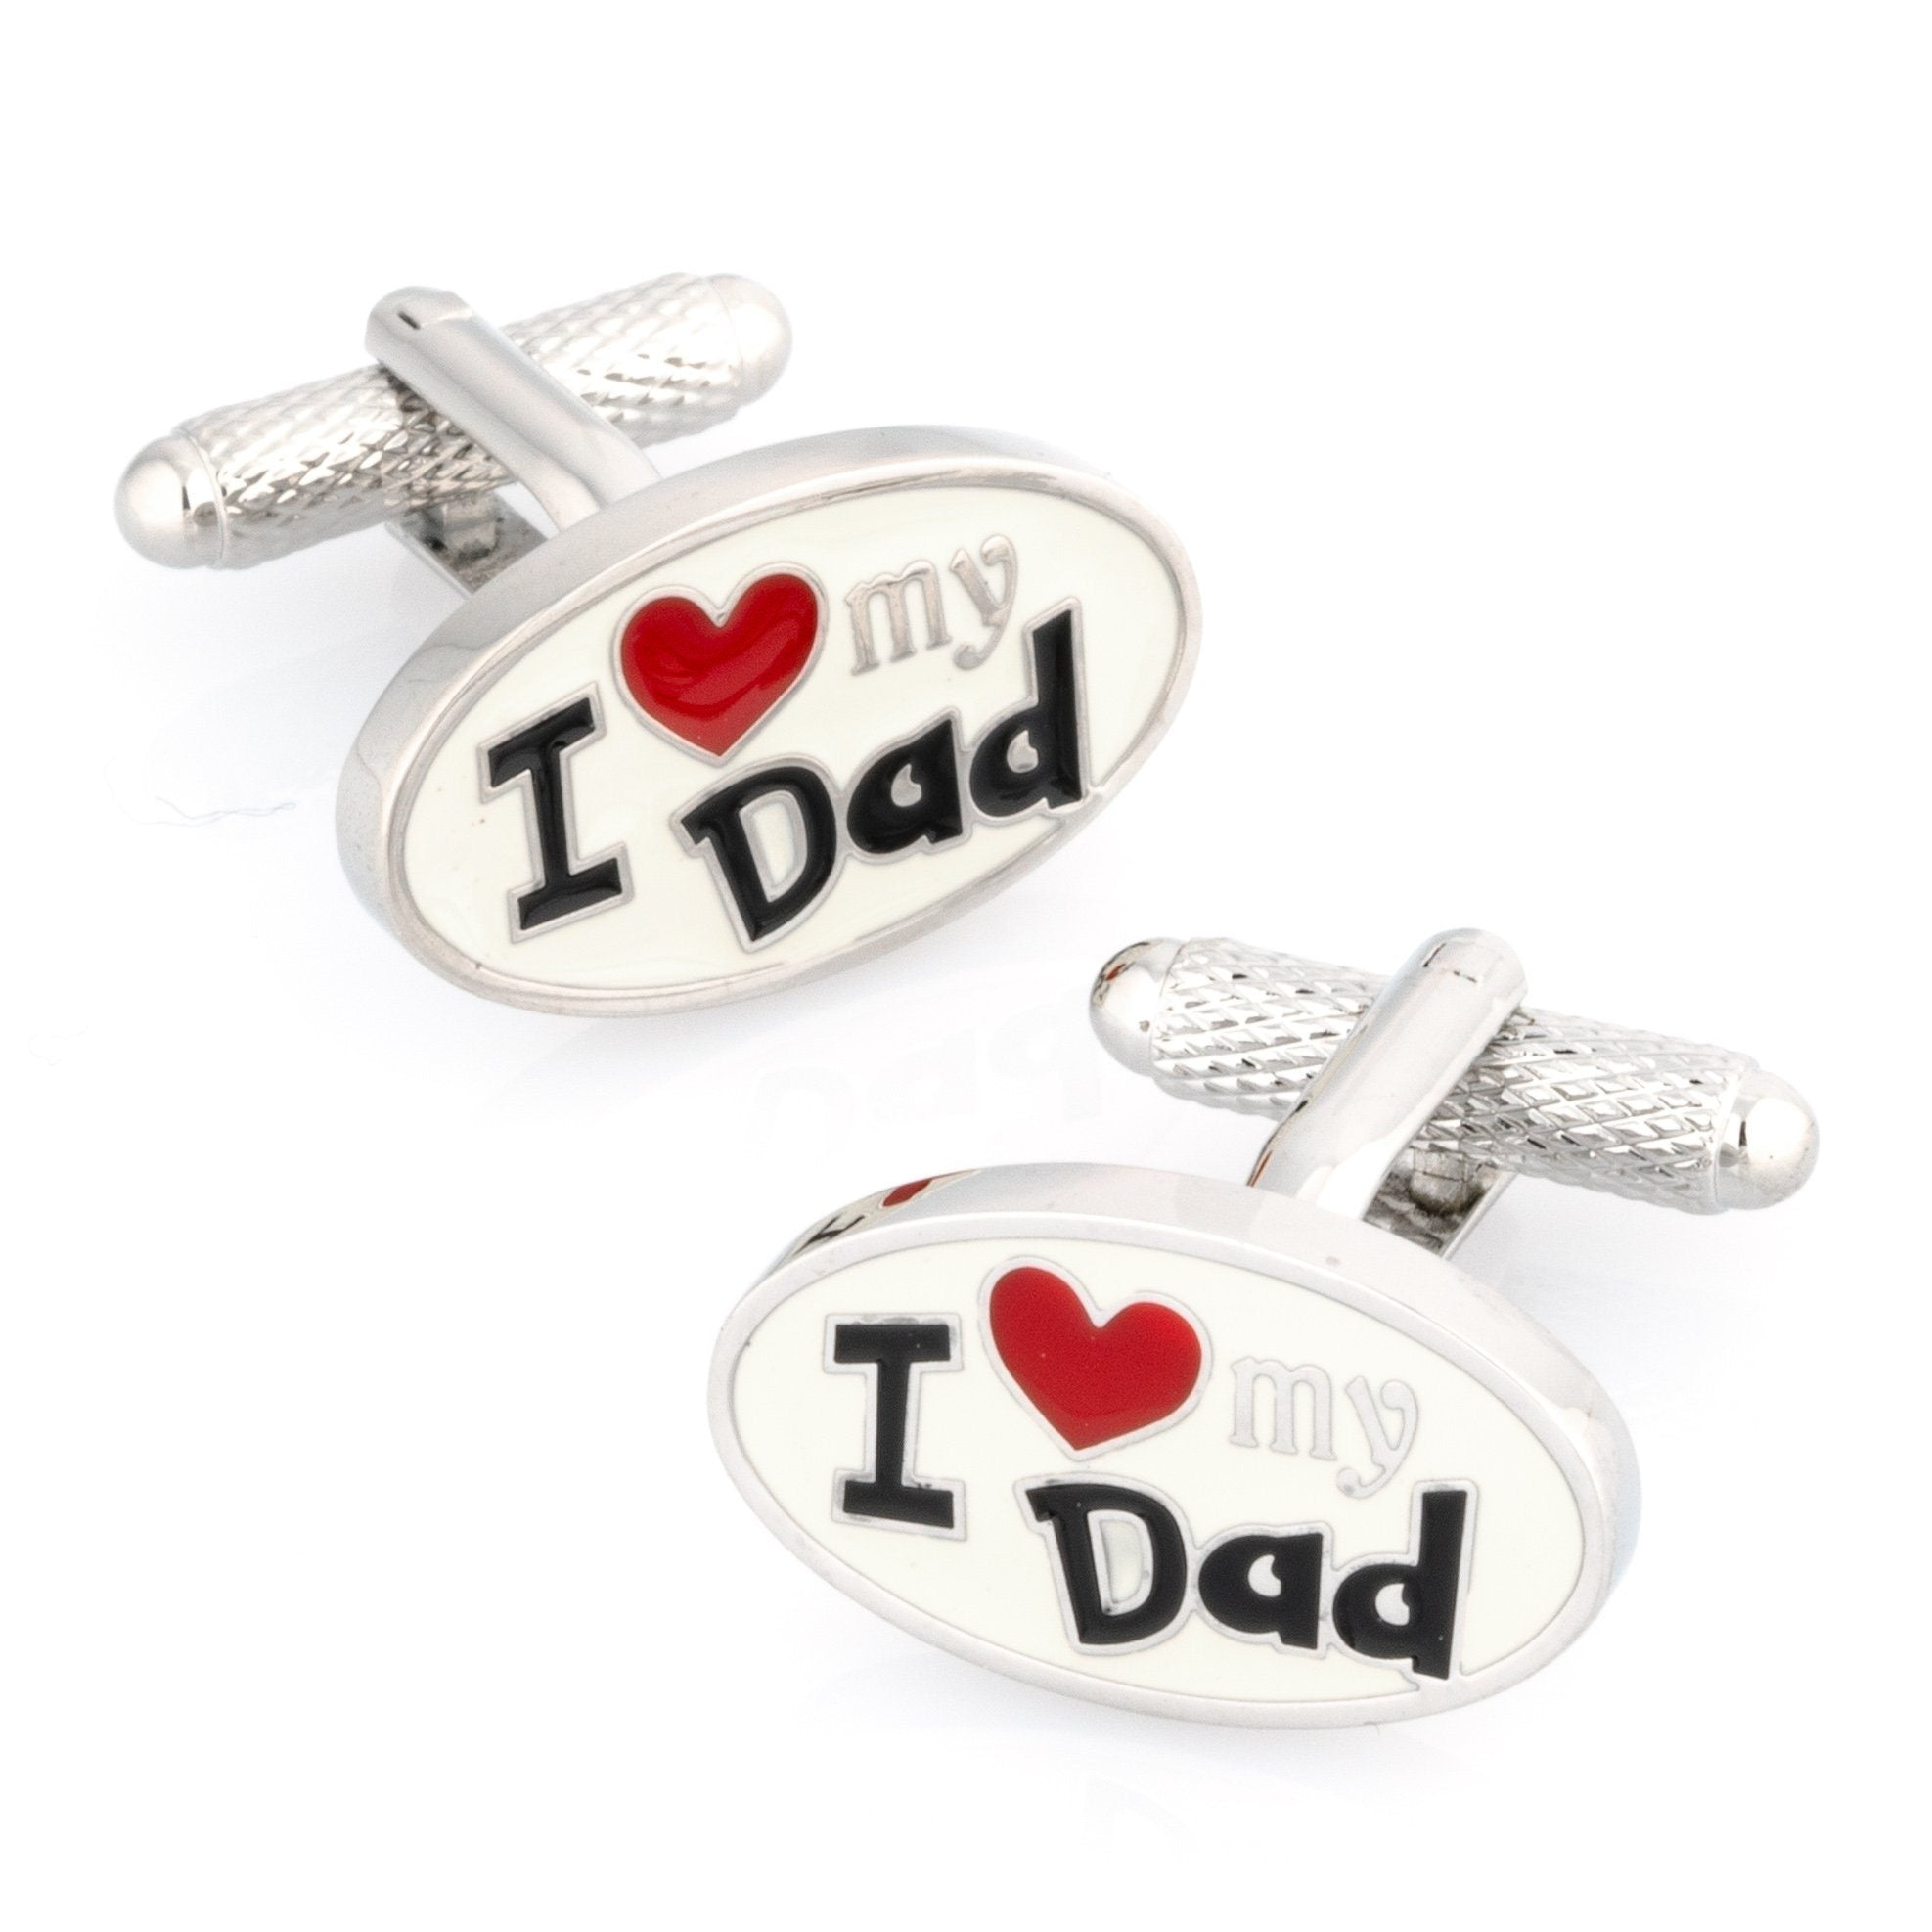 I Love My Dad Cufflinks Oval Novelty Cufflinks Clinks Australia I Love My Dad Cufflinks Oval